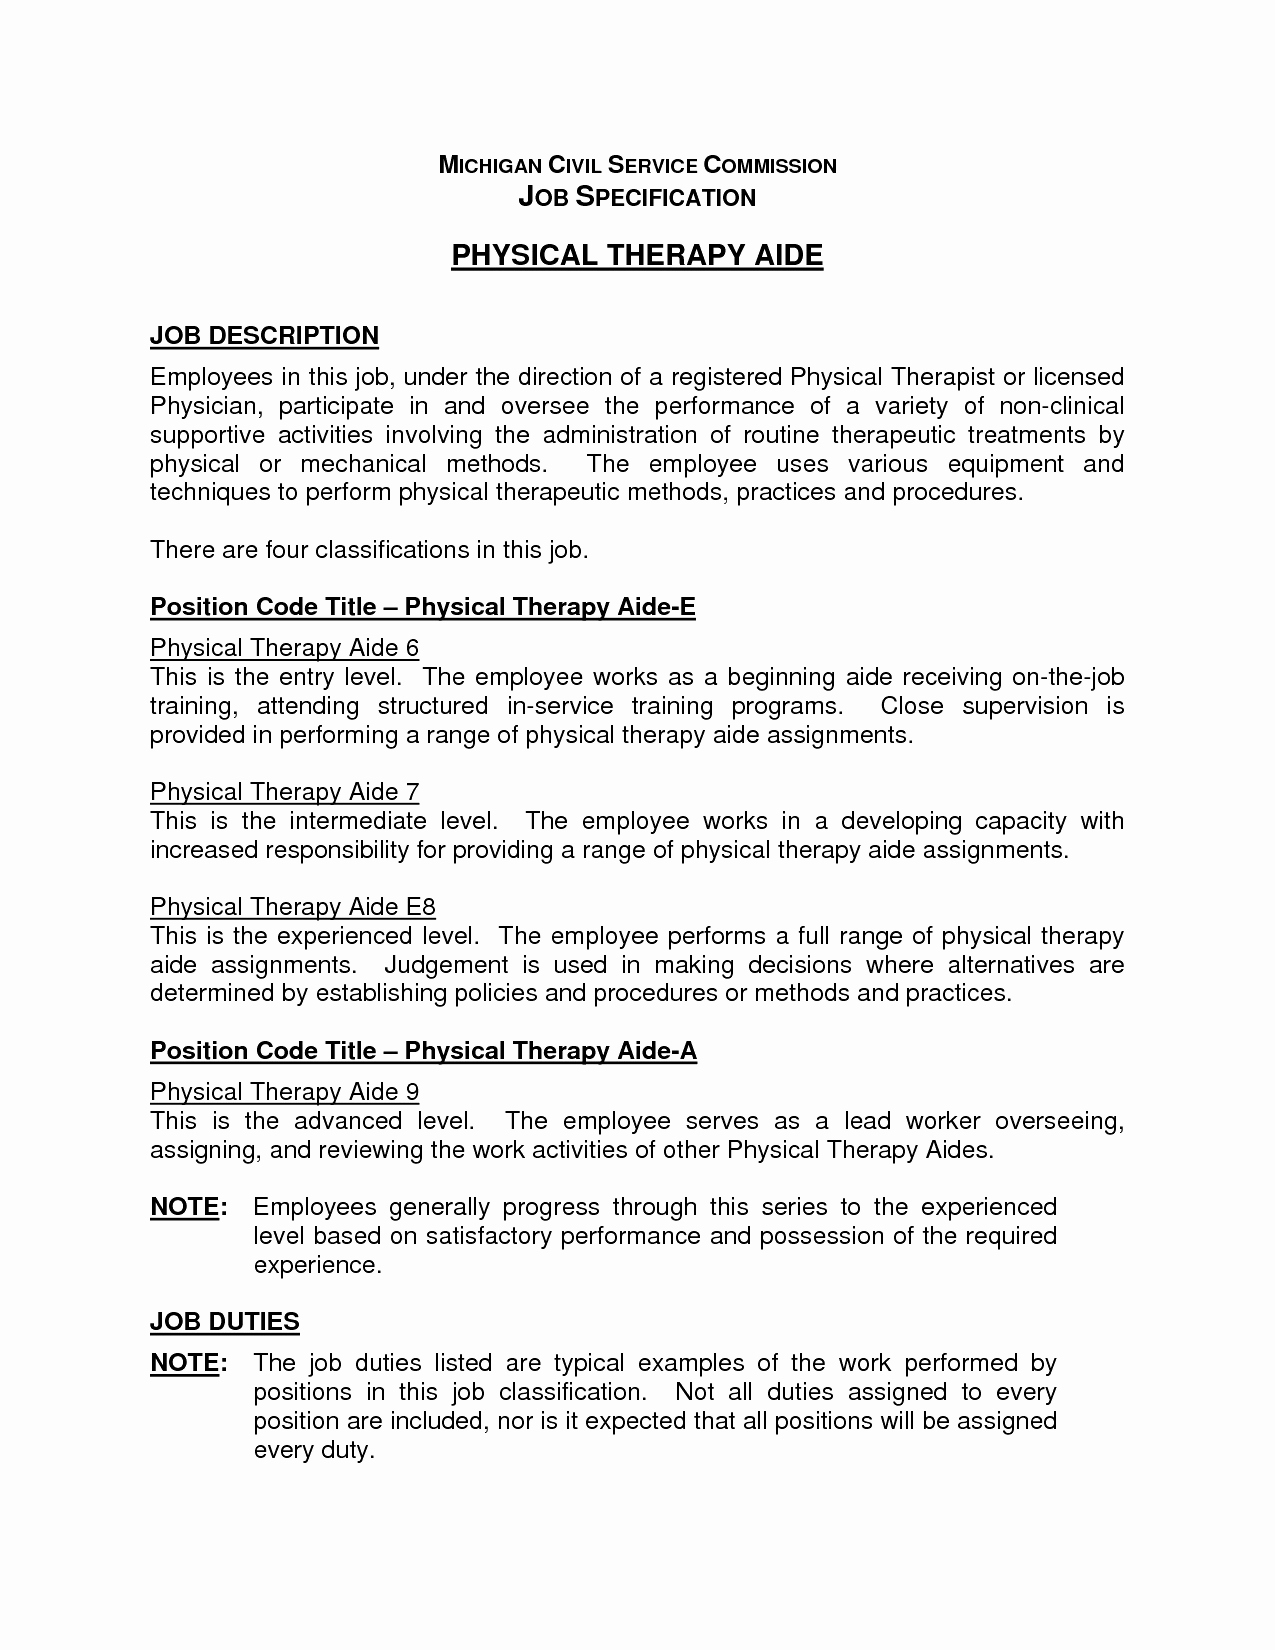 Physical therapy Cover Letter Template - Massage therapist Resume Examples Awesome Consulting Resume Examples